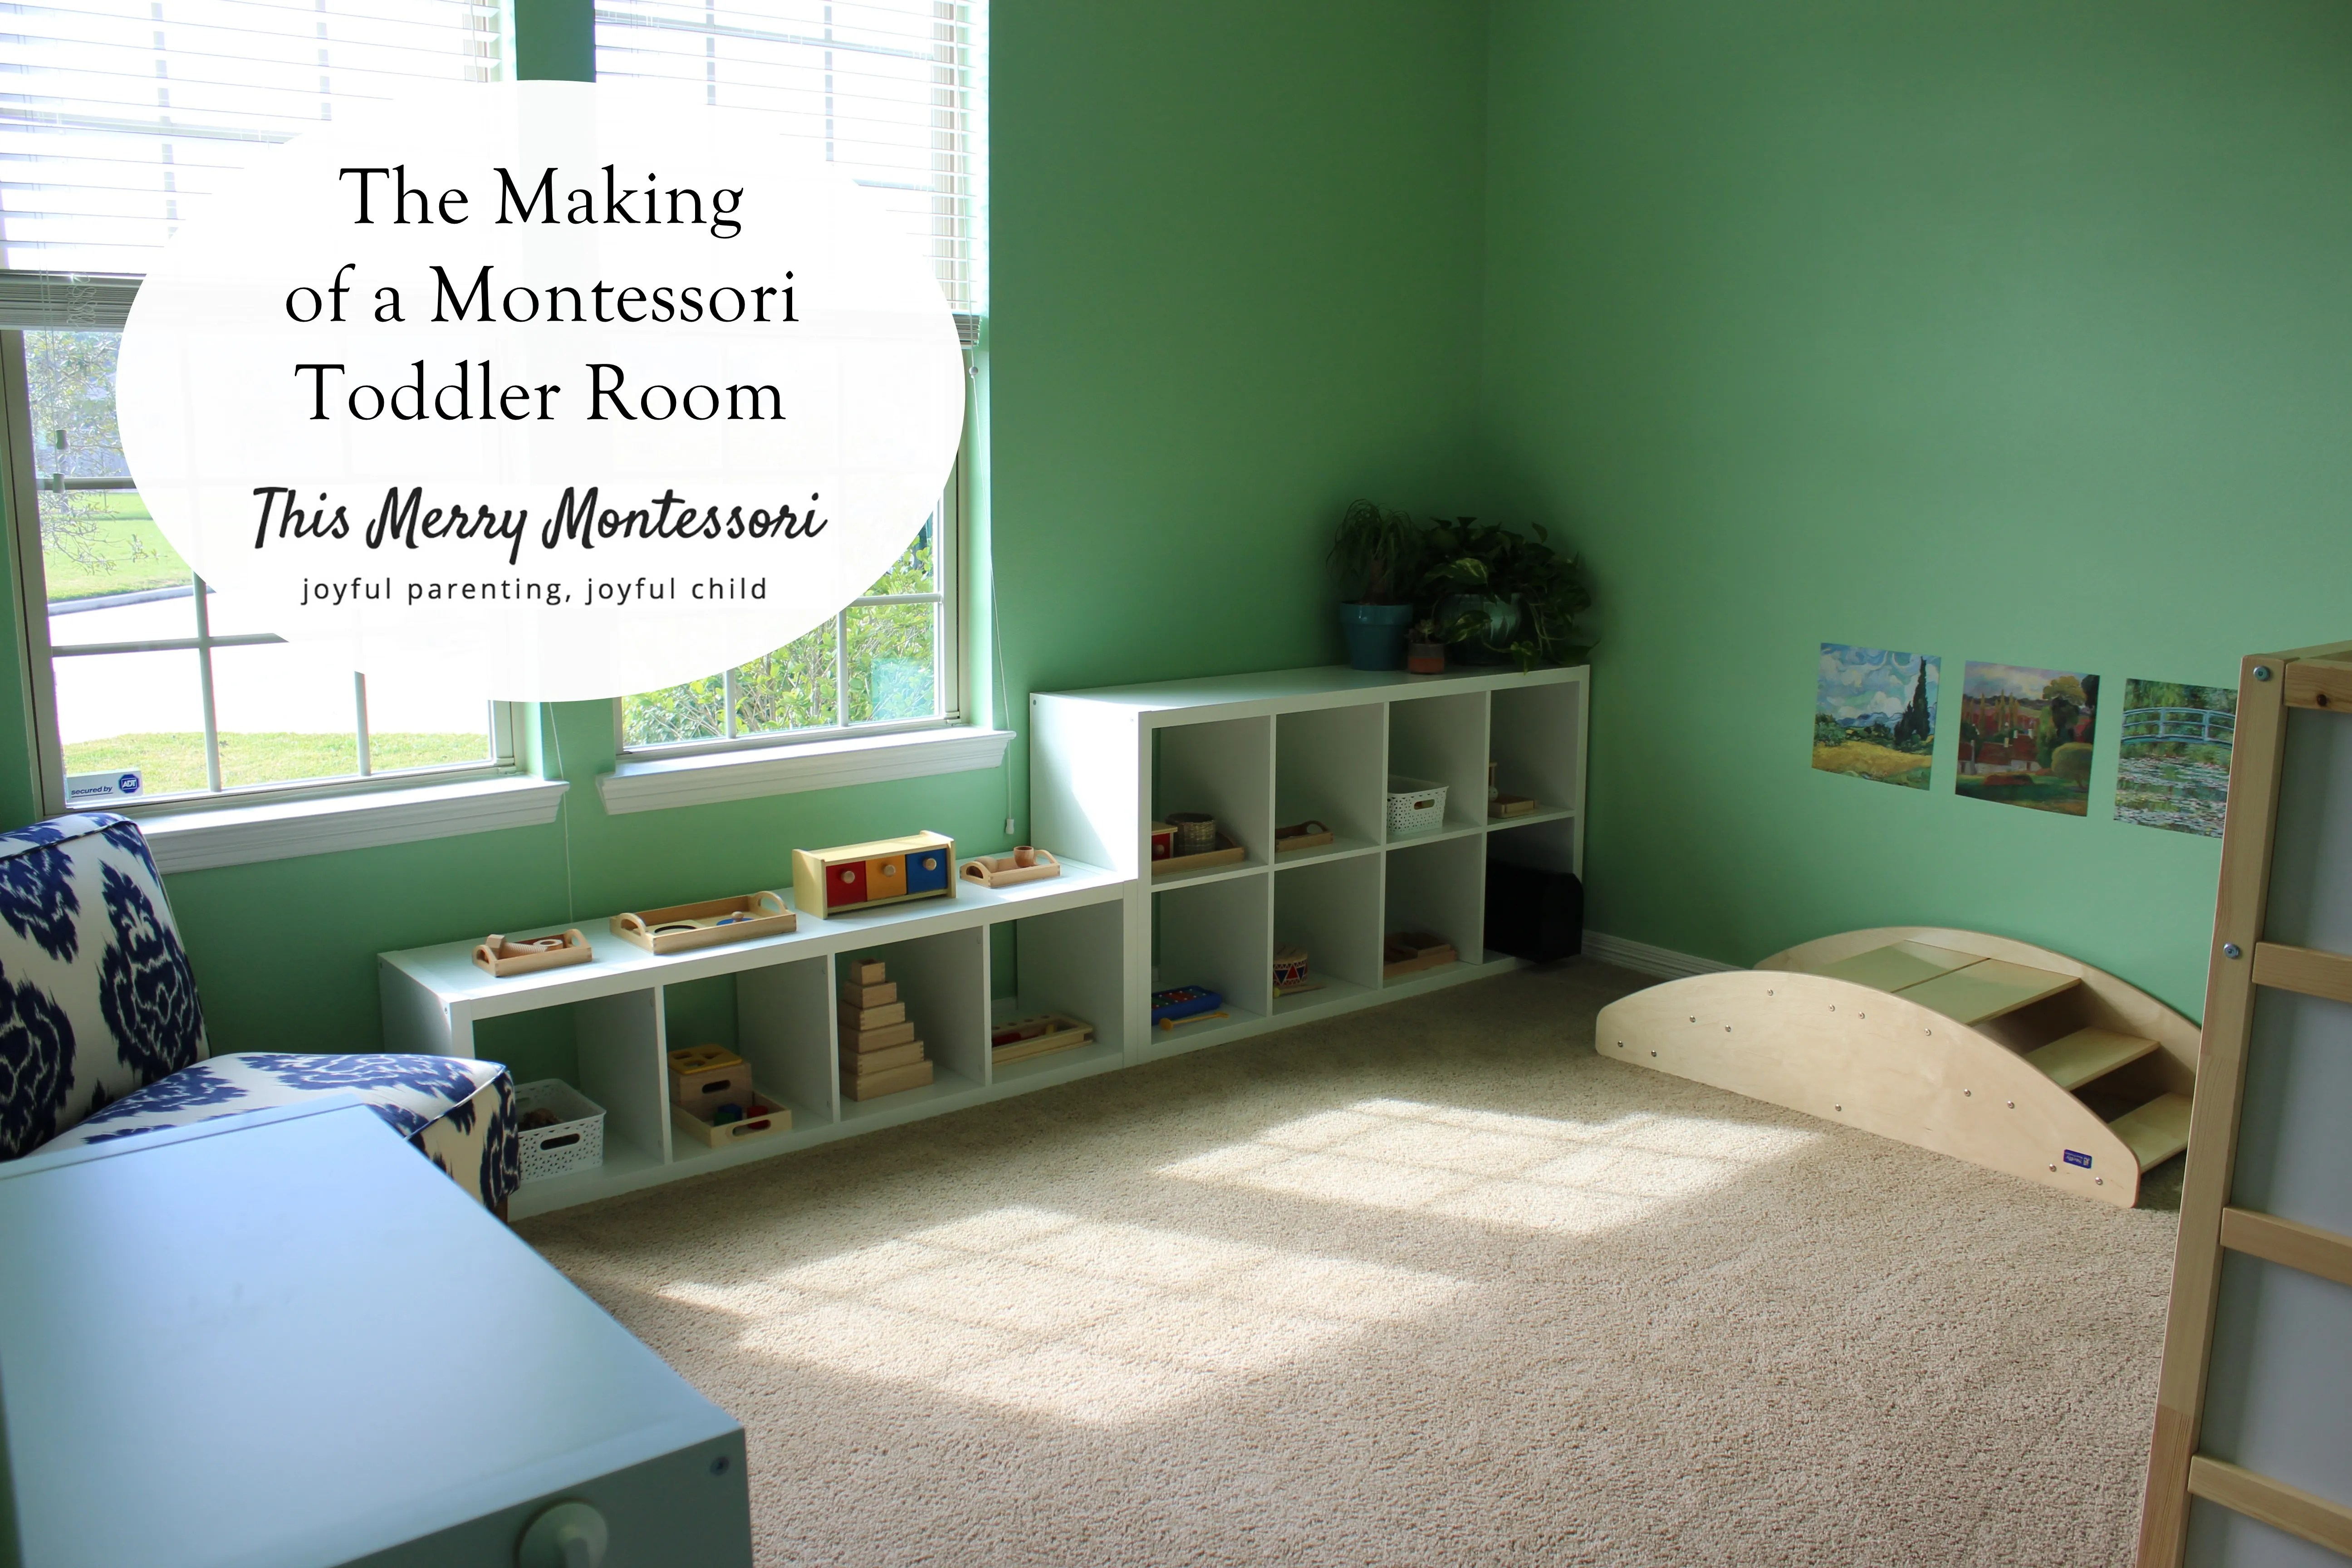 The Making of a Montessori Toddler Room